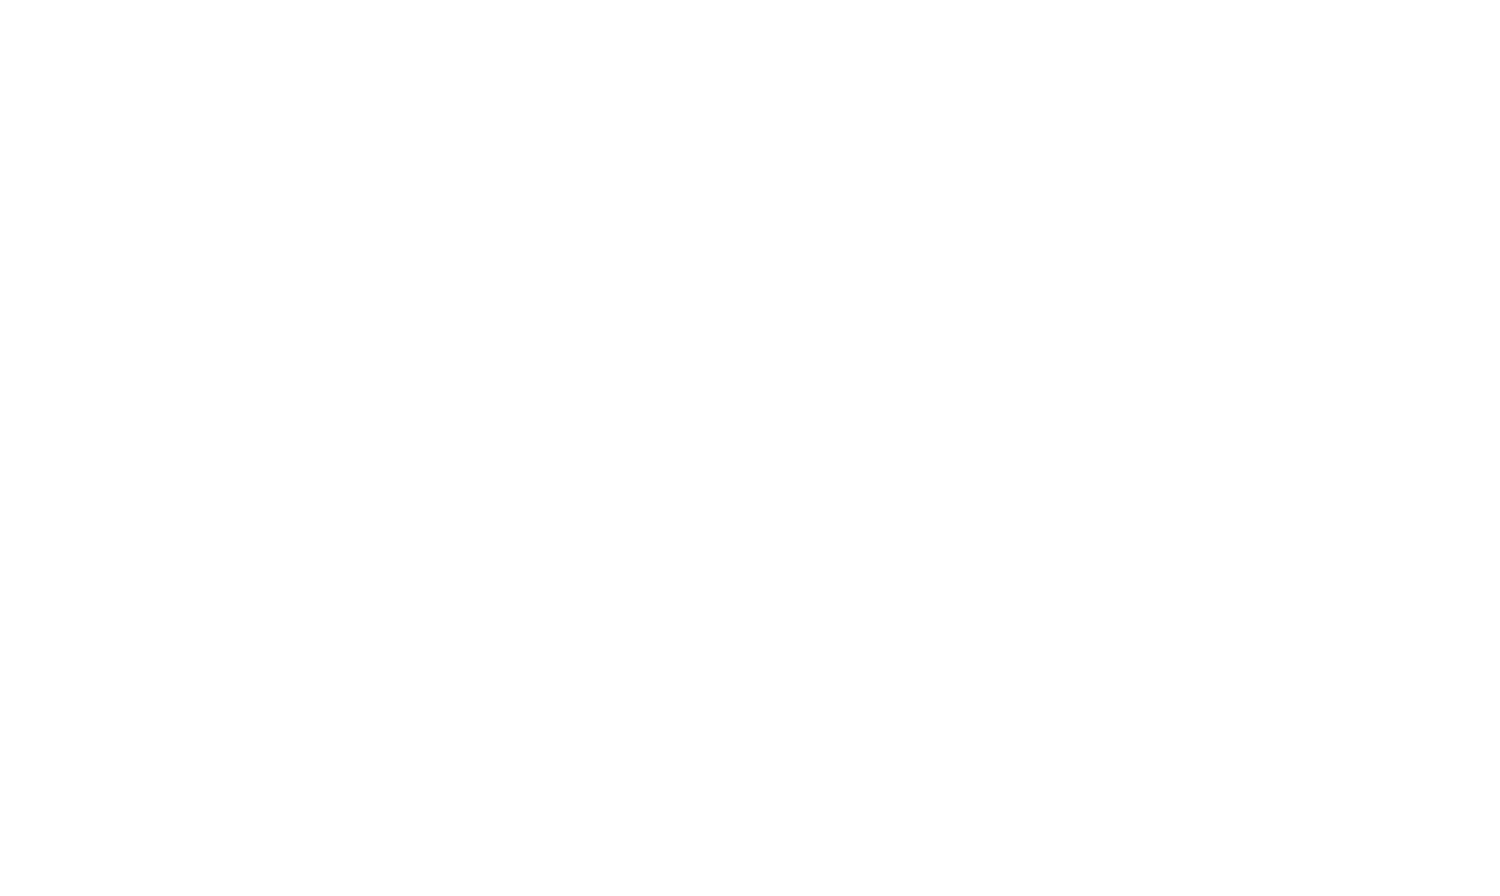 LPS FITNESS